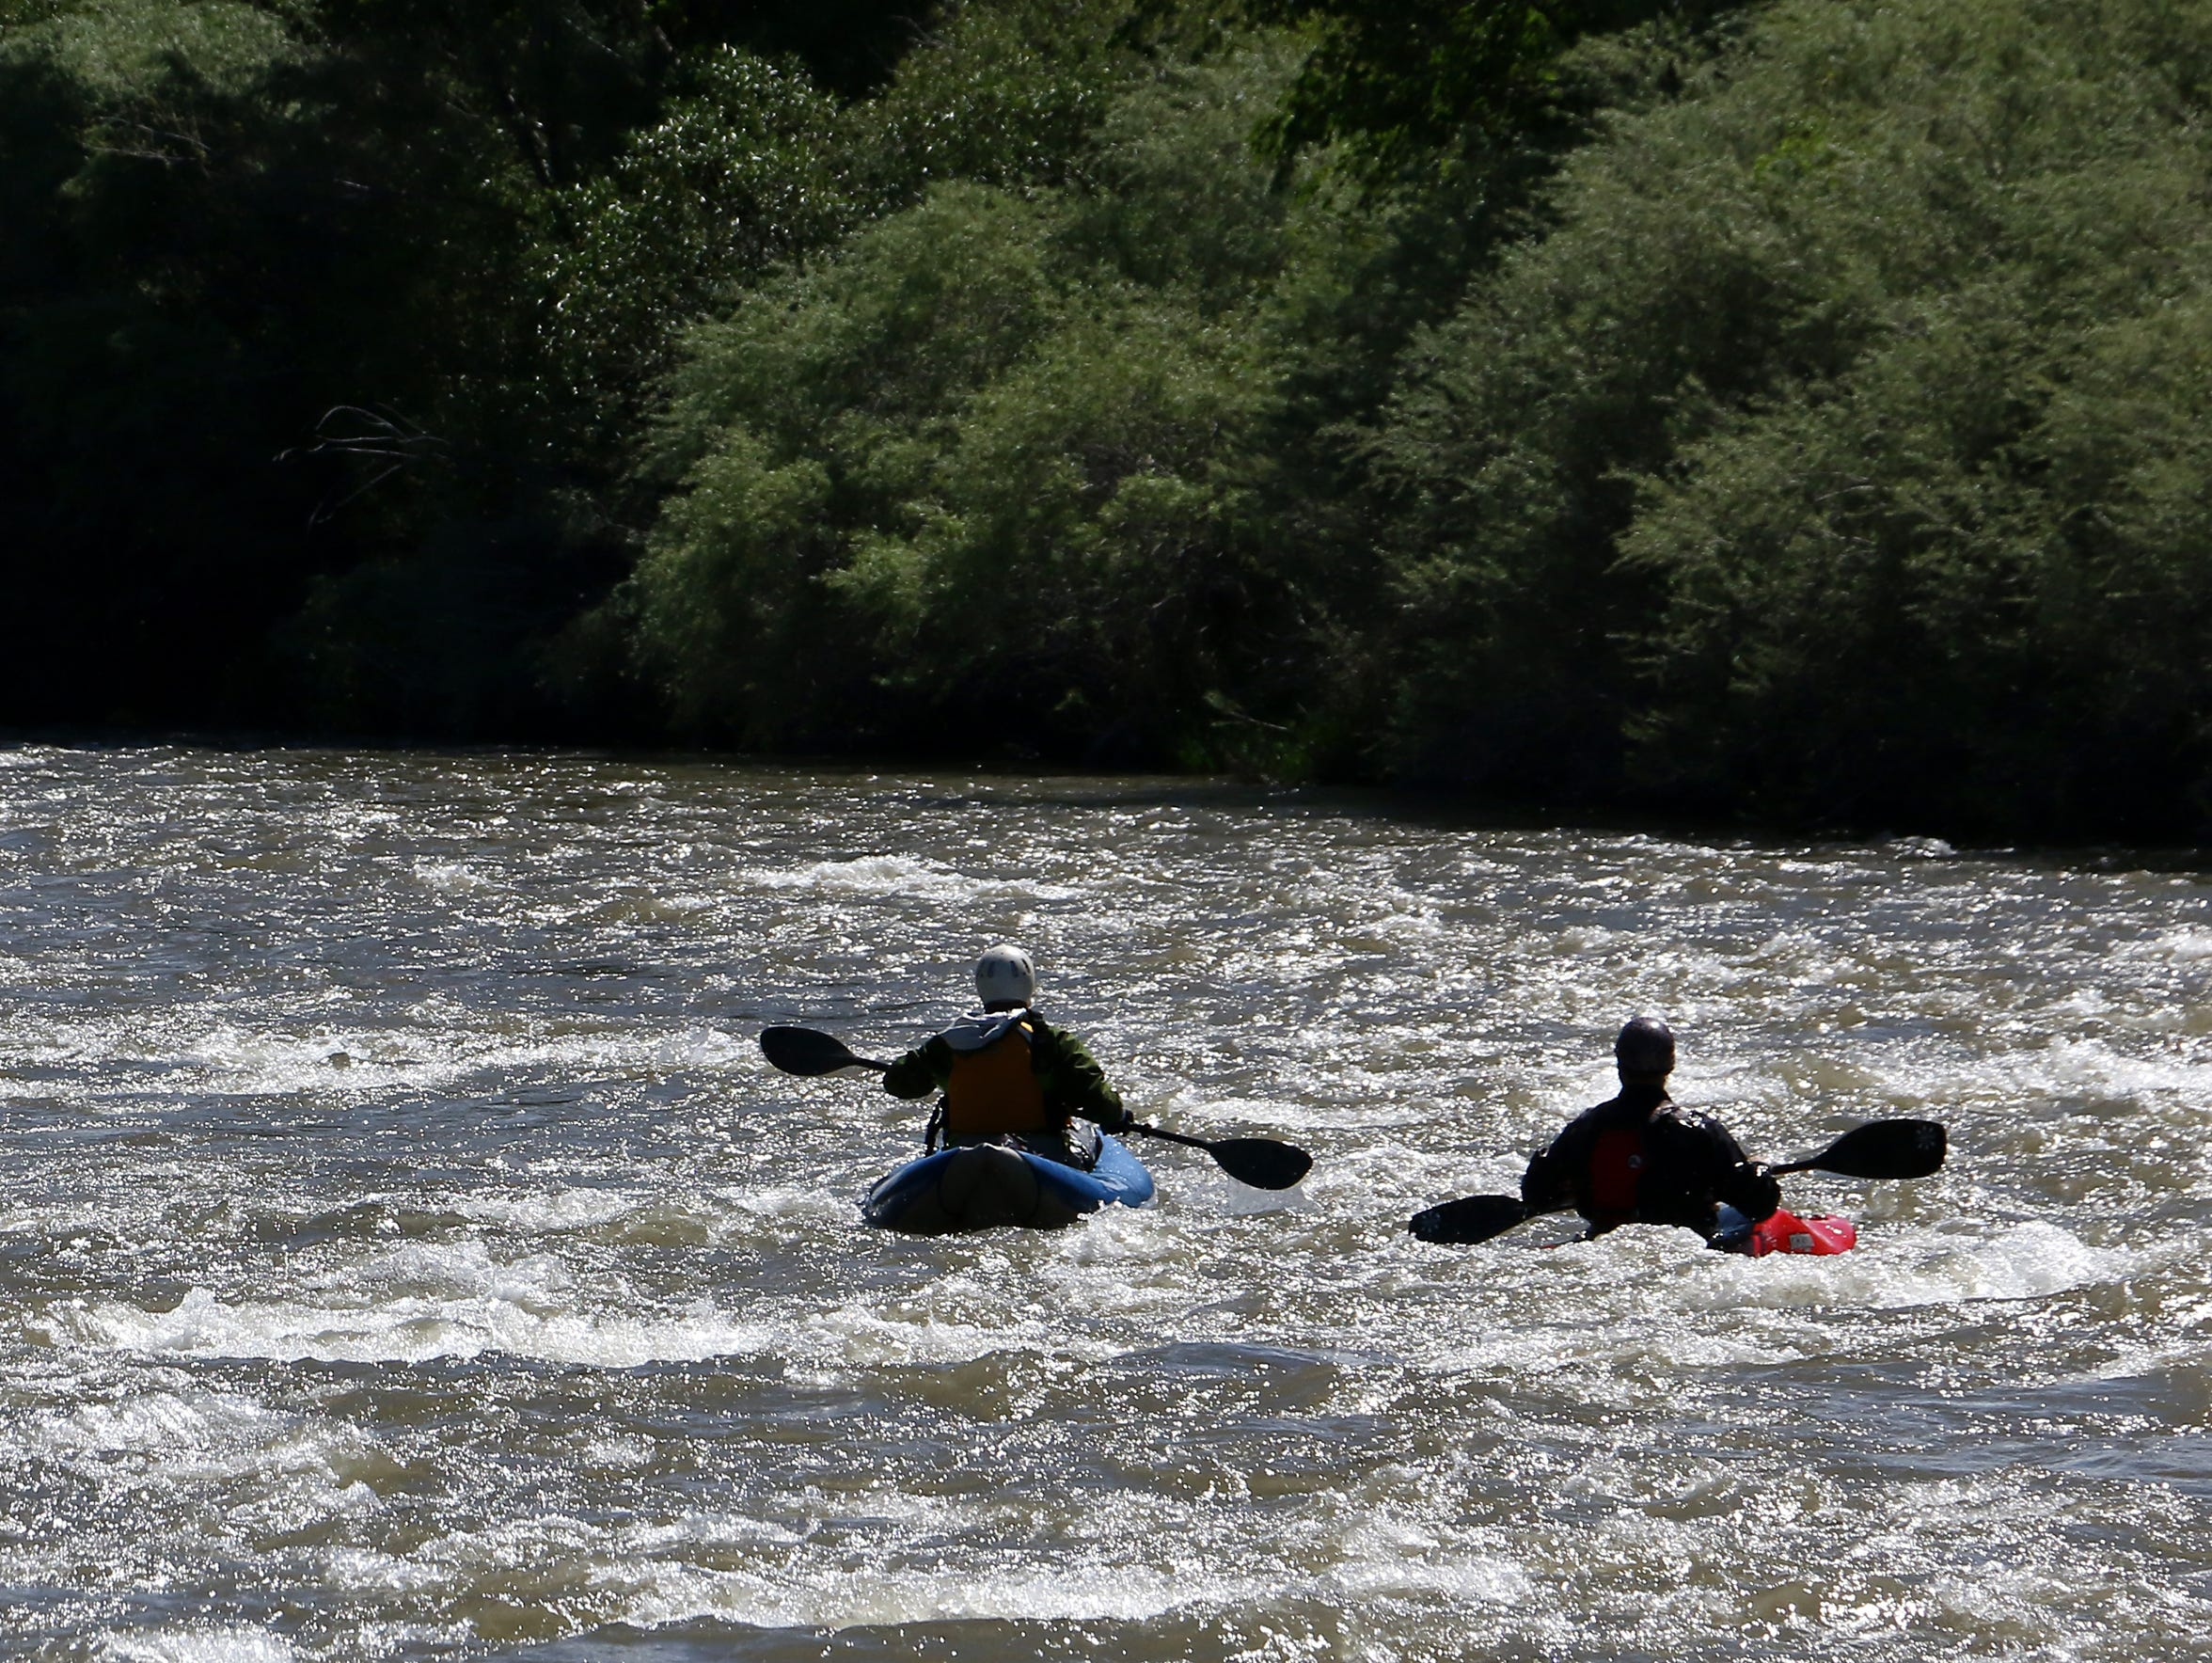 Ben Spillman and Noah Fraser paddle the Truckee River